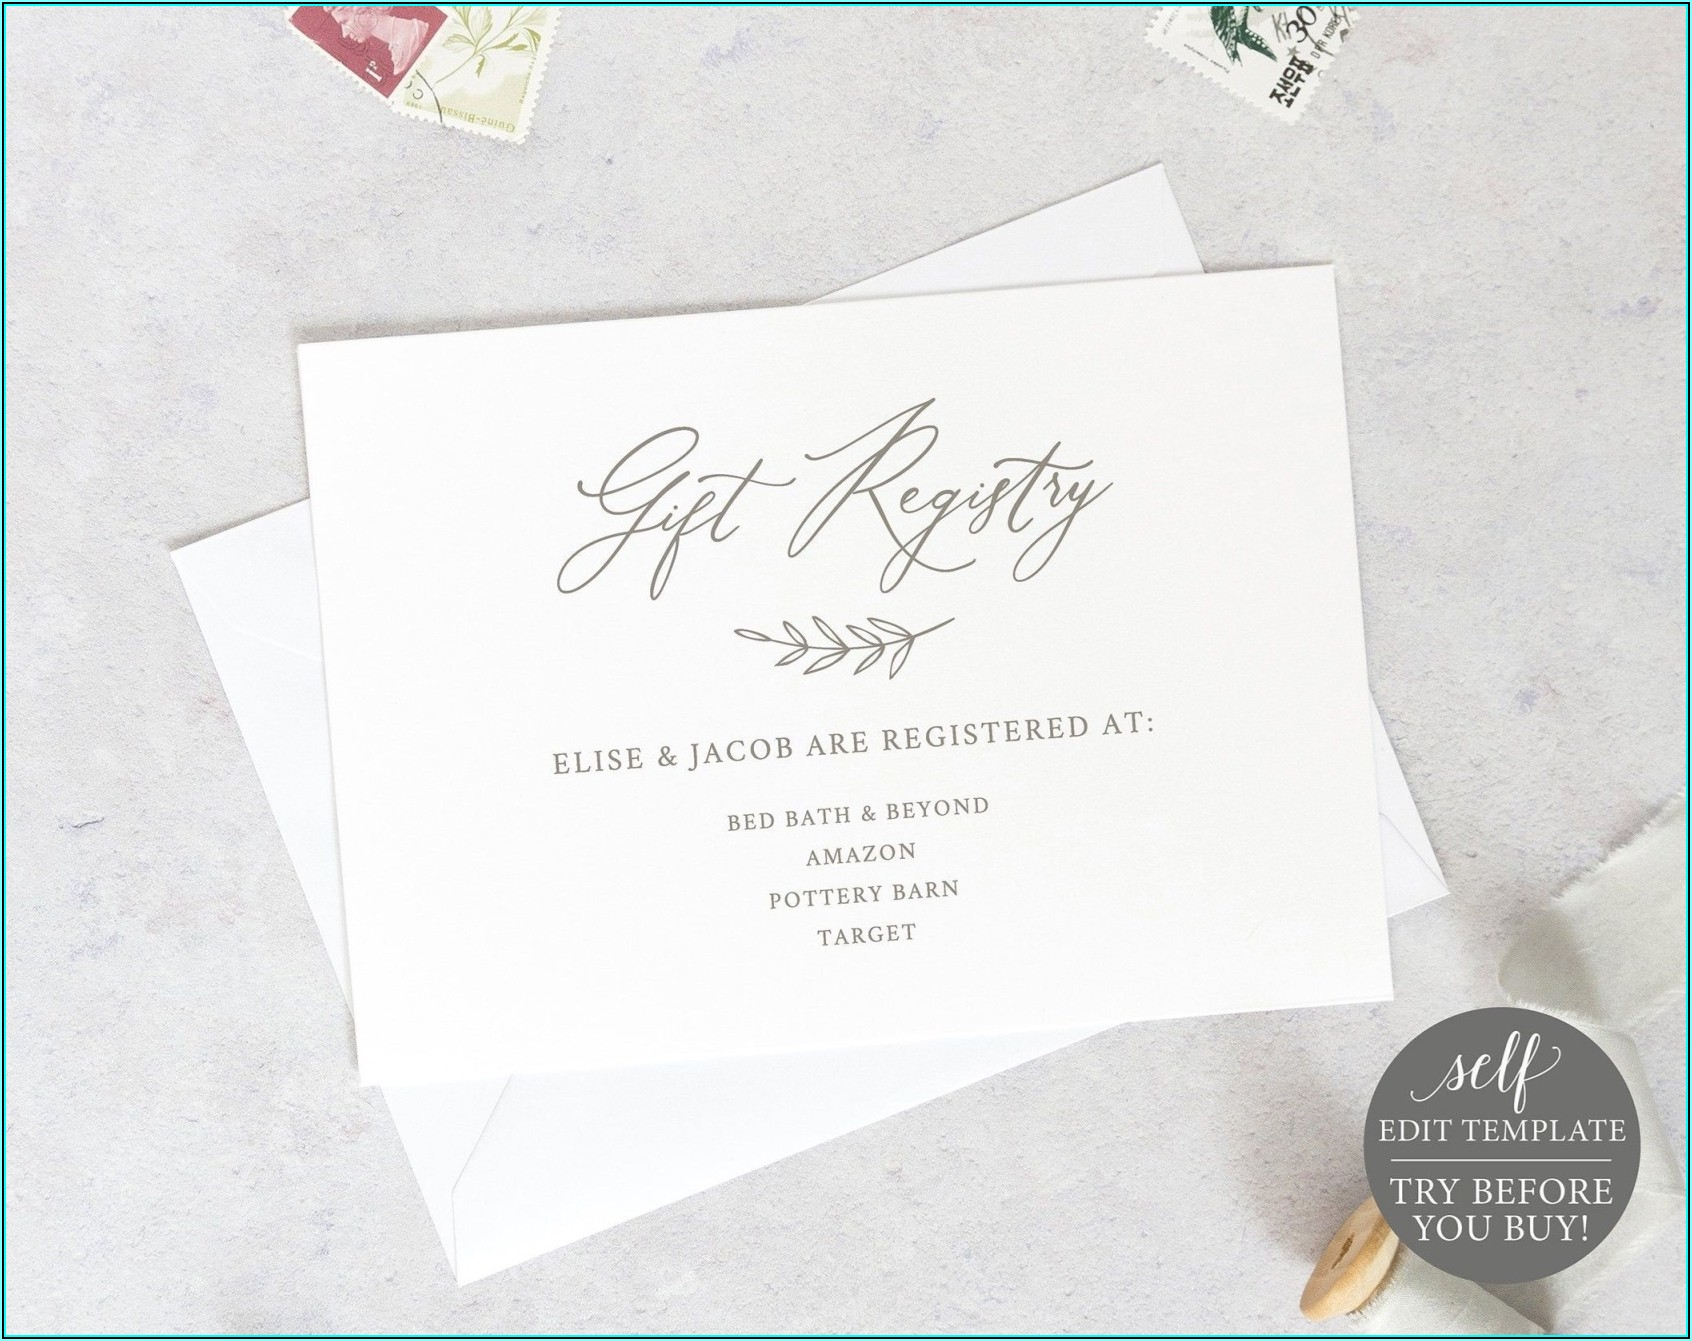 Target Wedding Registry Card Template